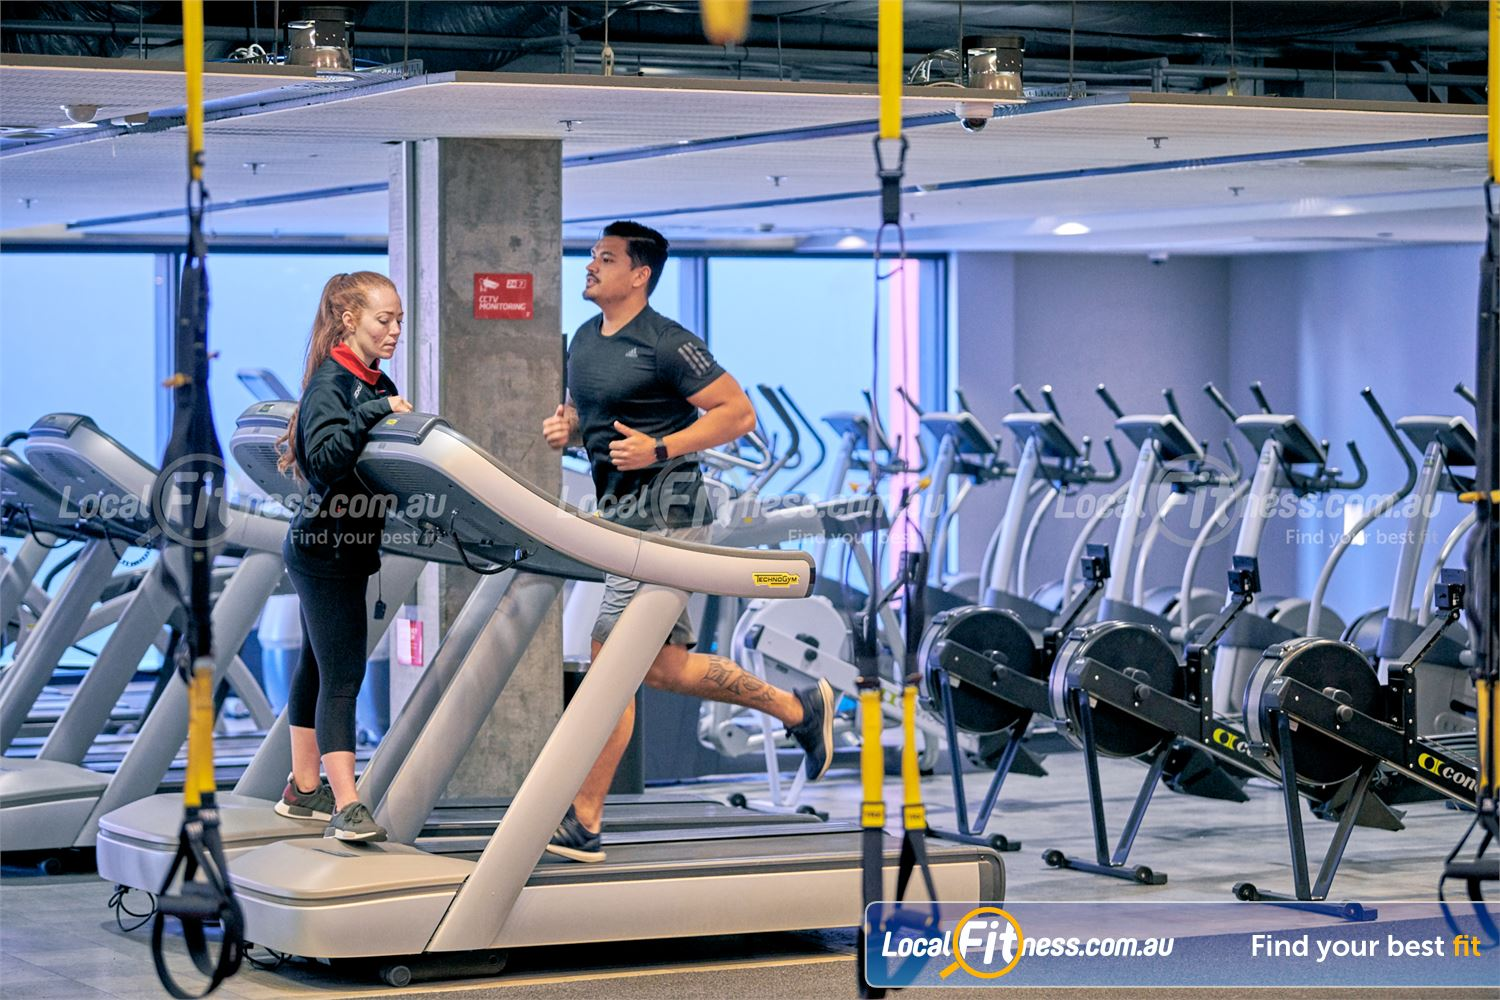 Fitness First Erina Fair Near Erina Heights Our Erina Fair gym includes a state of the art cardio theatre.